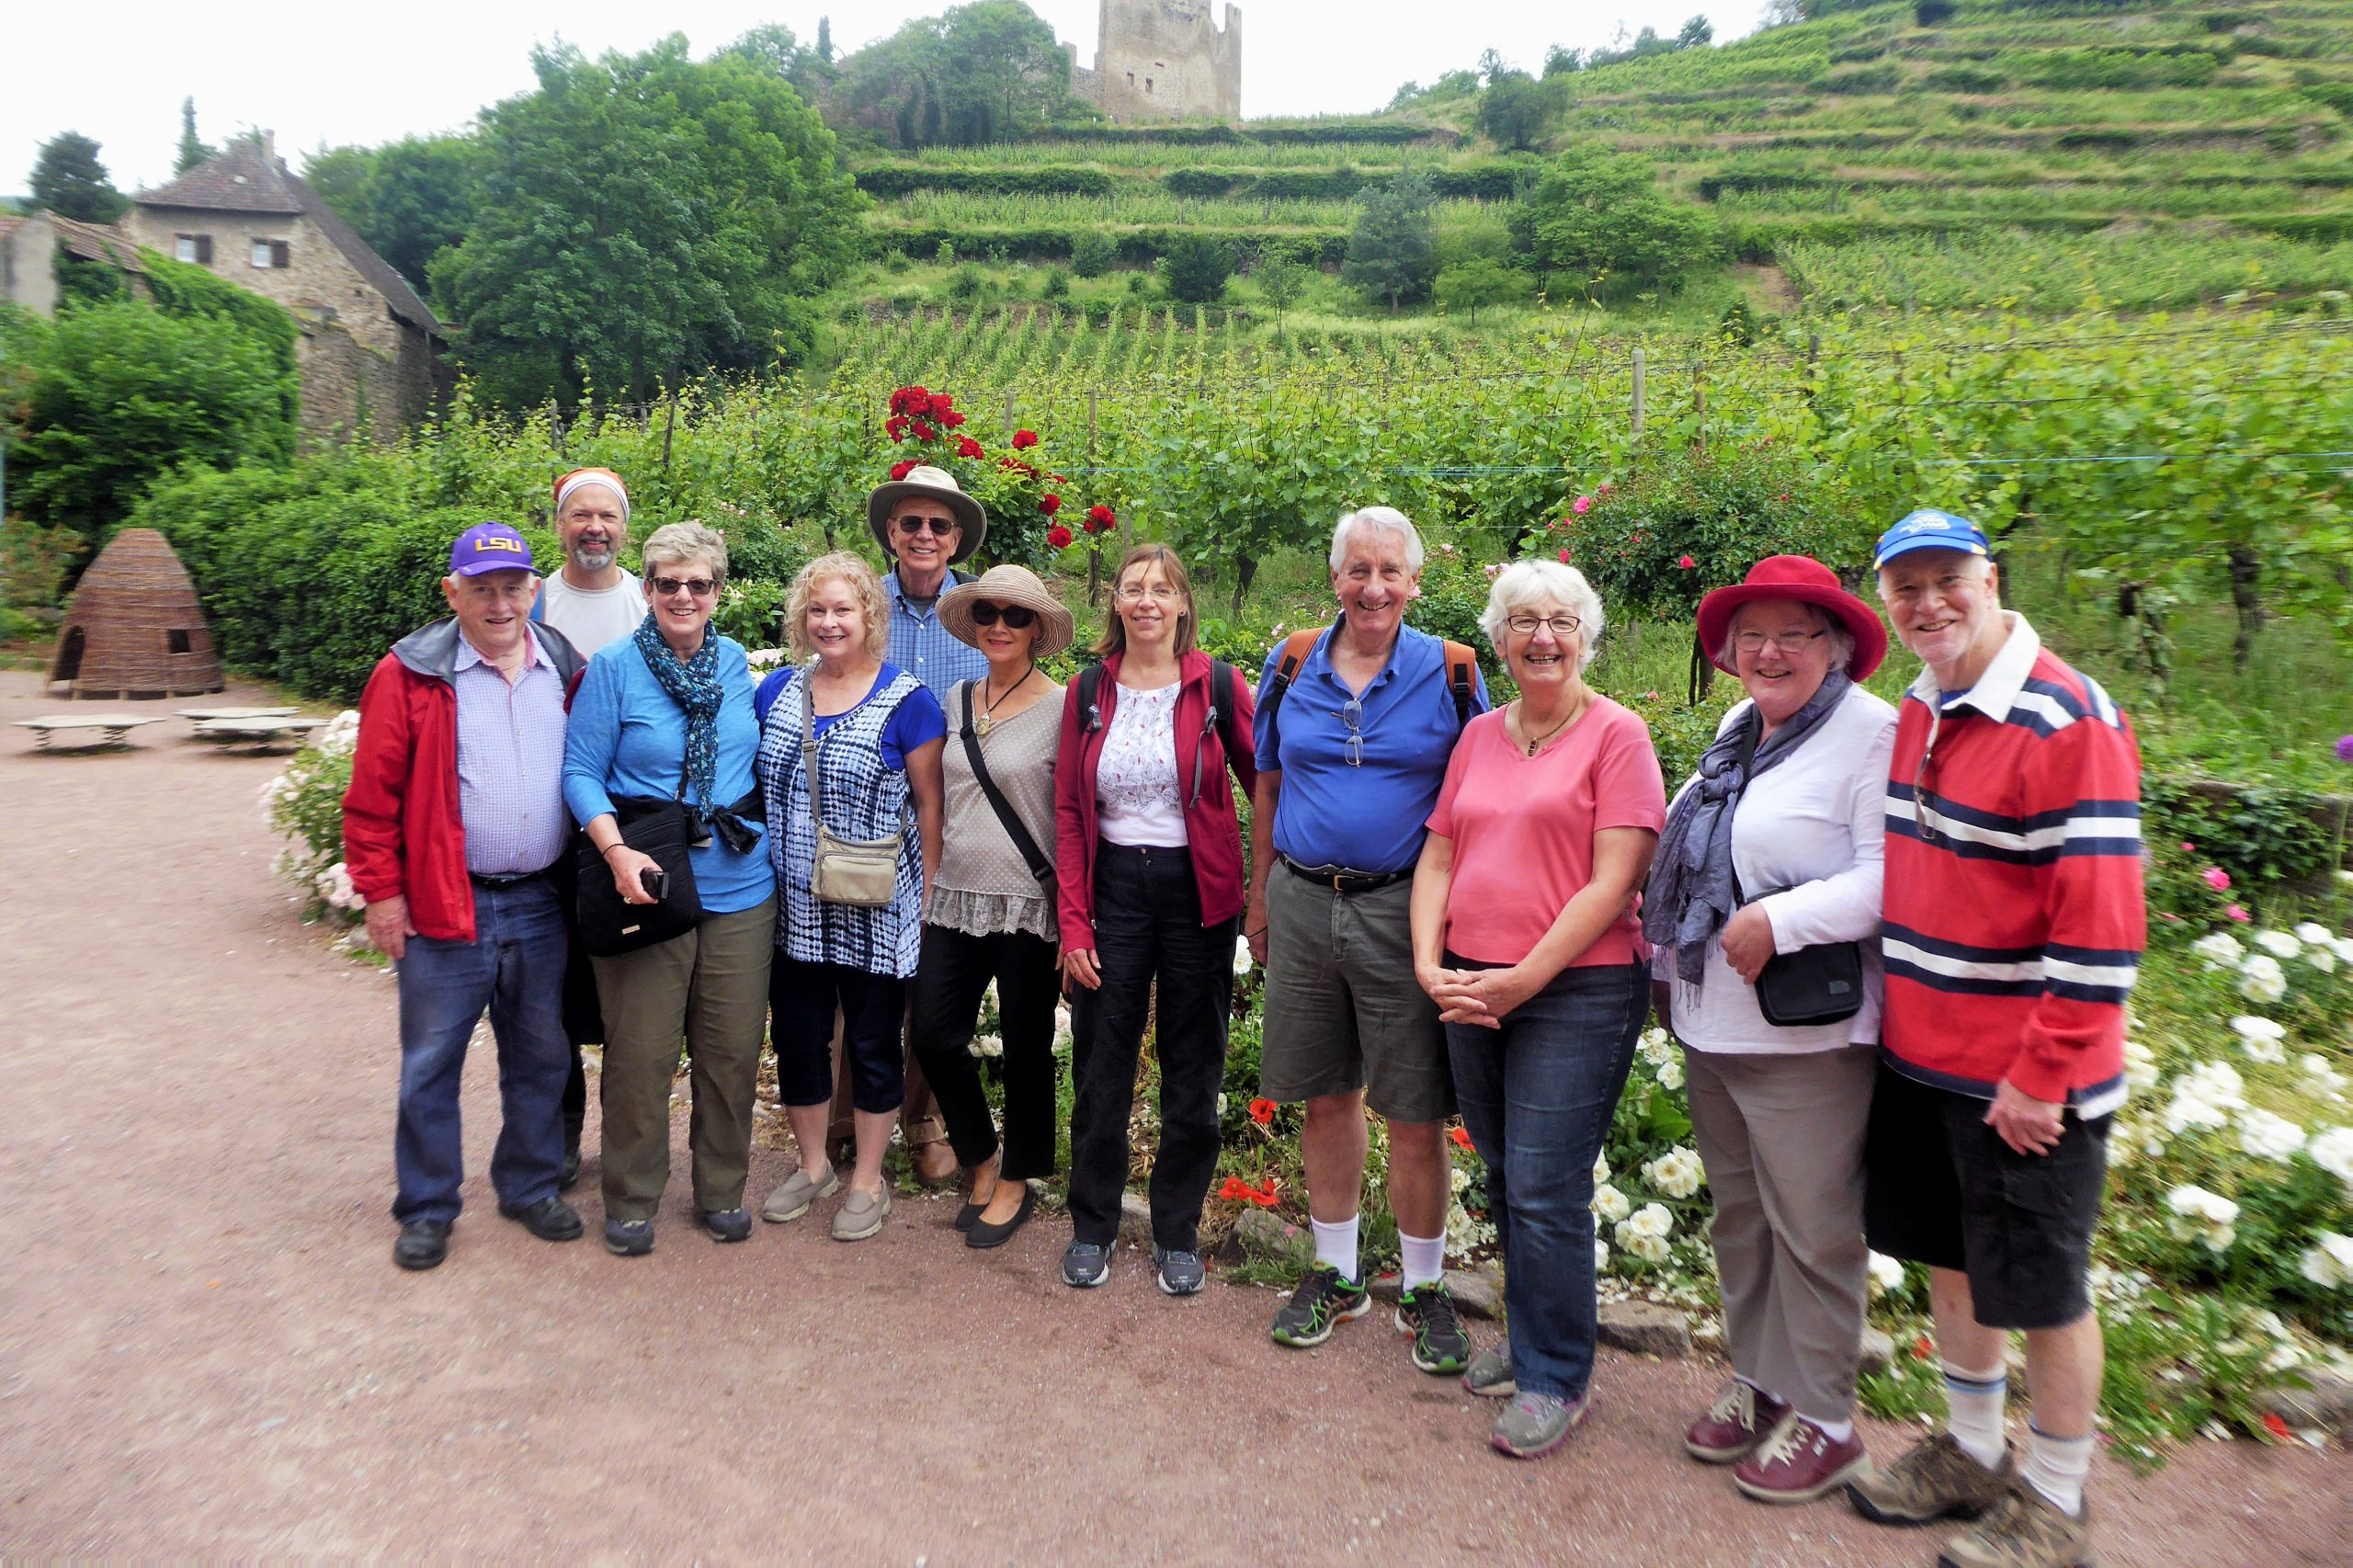 A group of people in front of a vineyard and castle ruins